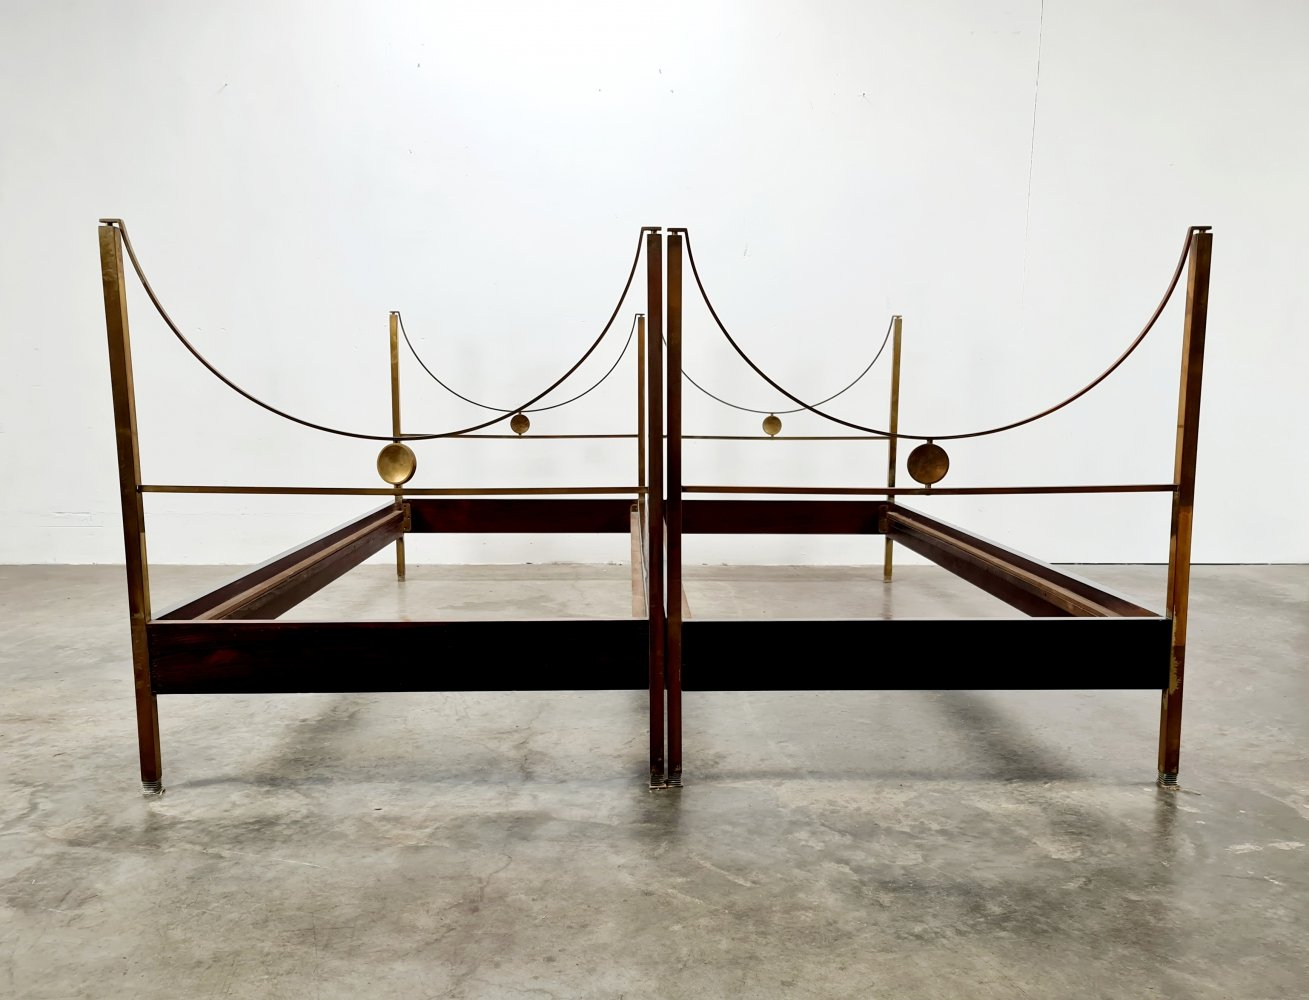 Set of 2 D90 beds by Carlo di Carli for Sormani, 1960s